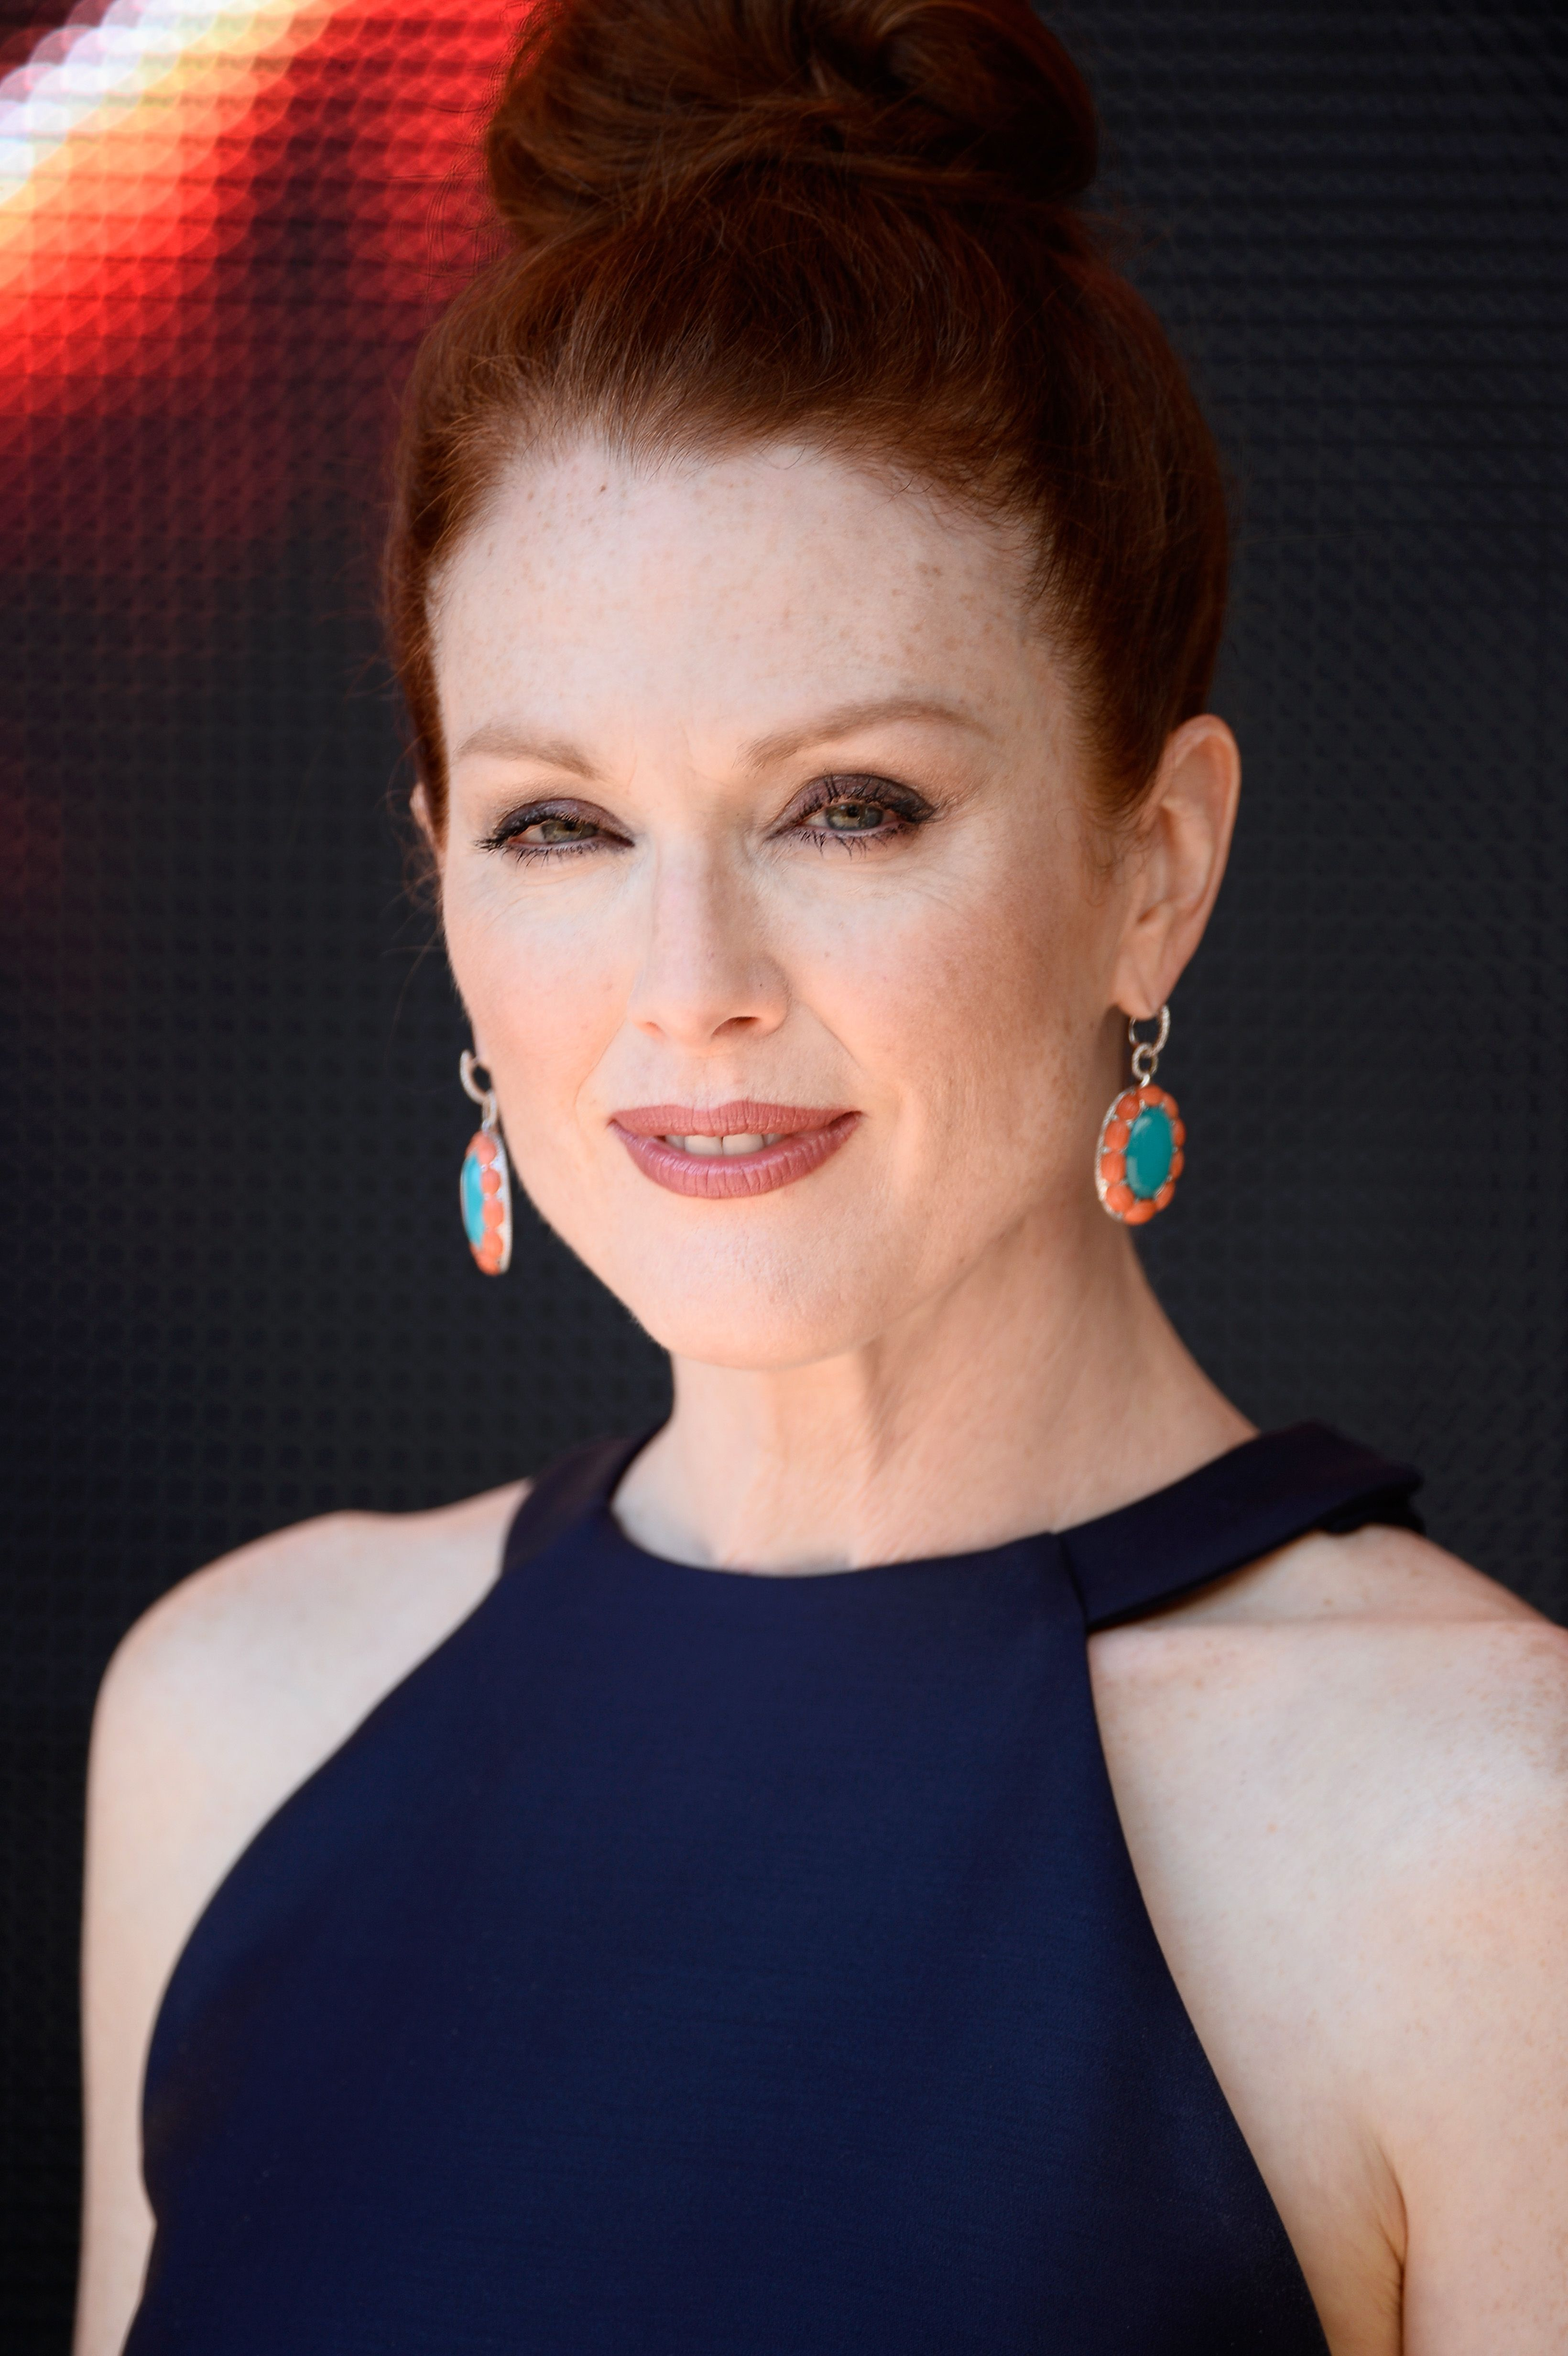 julianne moore daughterjulianne moore instagram, julianne moore films, julianne moore 2016, julianne moore movies, julianne moore oscar, julianne moore 2017, julianne moore gif, julianne moore loreal, julianne moore wiki, julianne moore site, julianne moore and her daughter, julianne moore twitter, julianne moore and bart freundlich, julianne moore crying, julianne moore foto, julianne moore john cusack, julianne moore makeup, julianne moore green, julianne moore street, julianne moore daughter